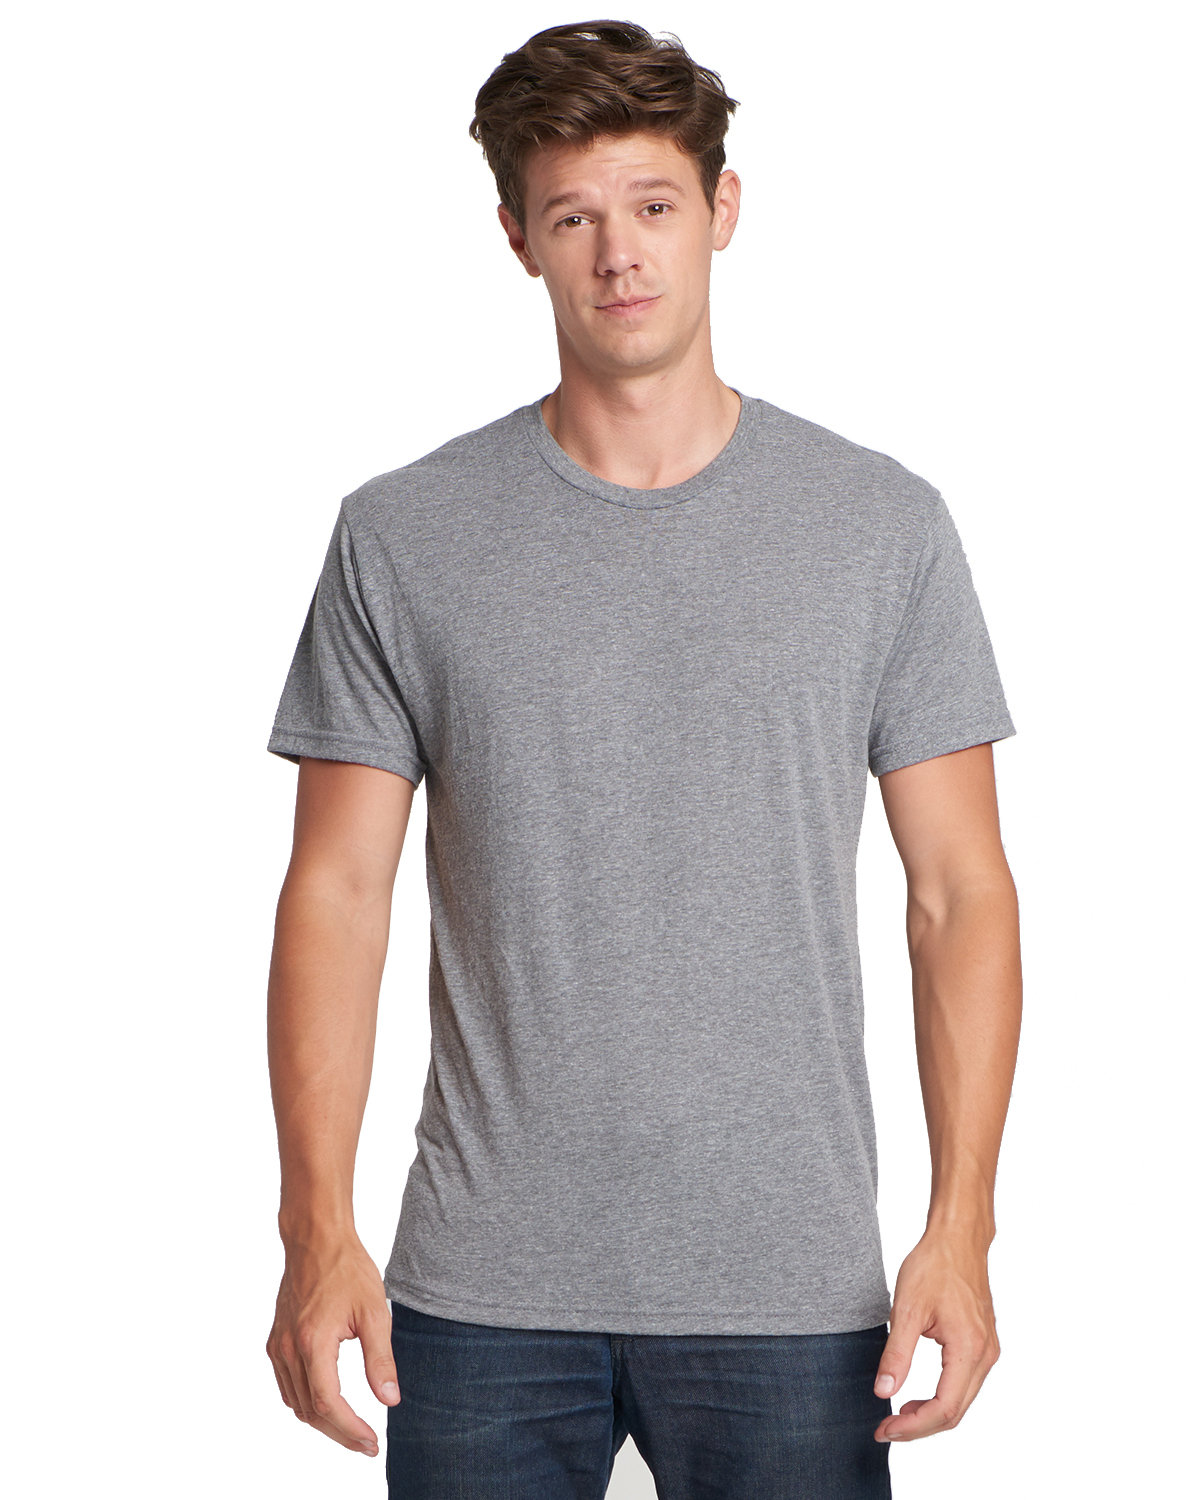 Next Level Men's Made in USA Triblend T-Shirt PREMIUM HEATHER